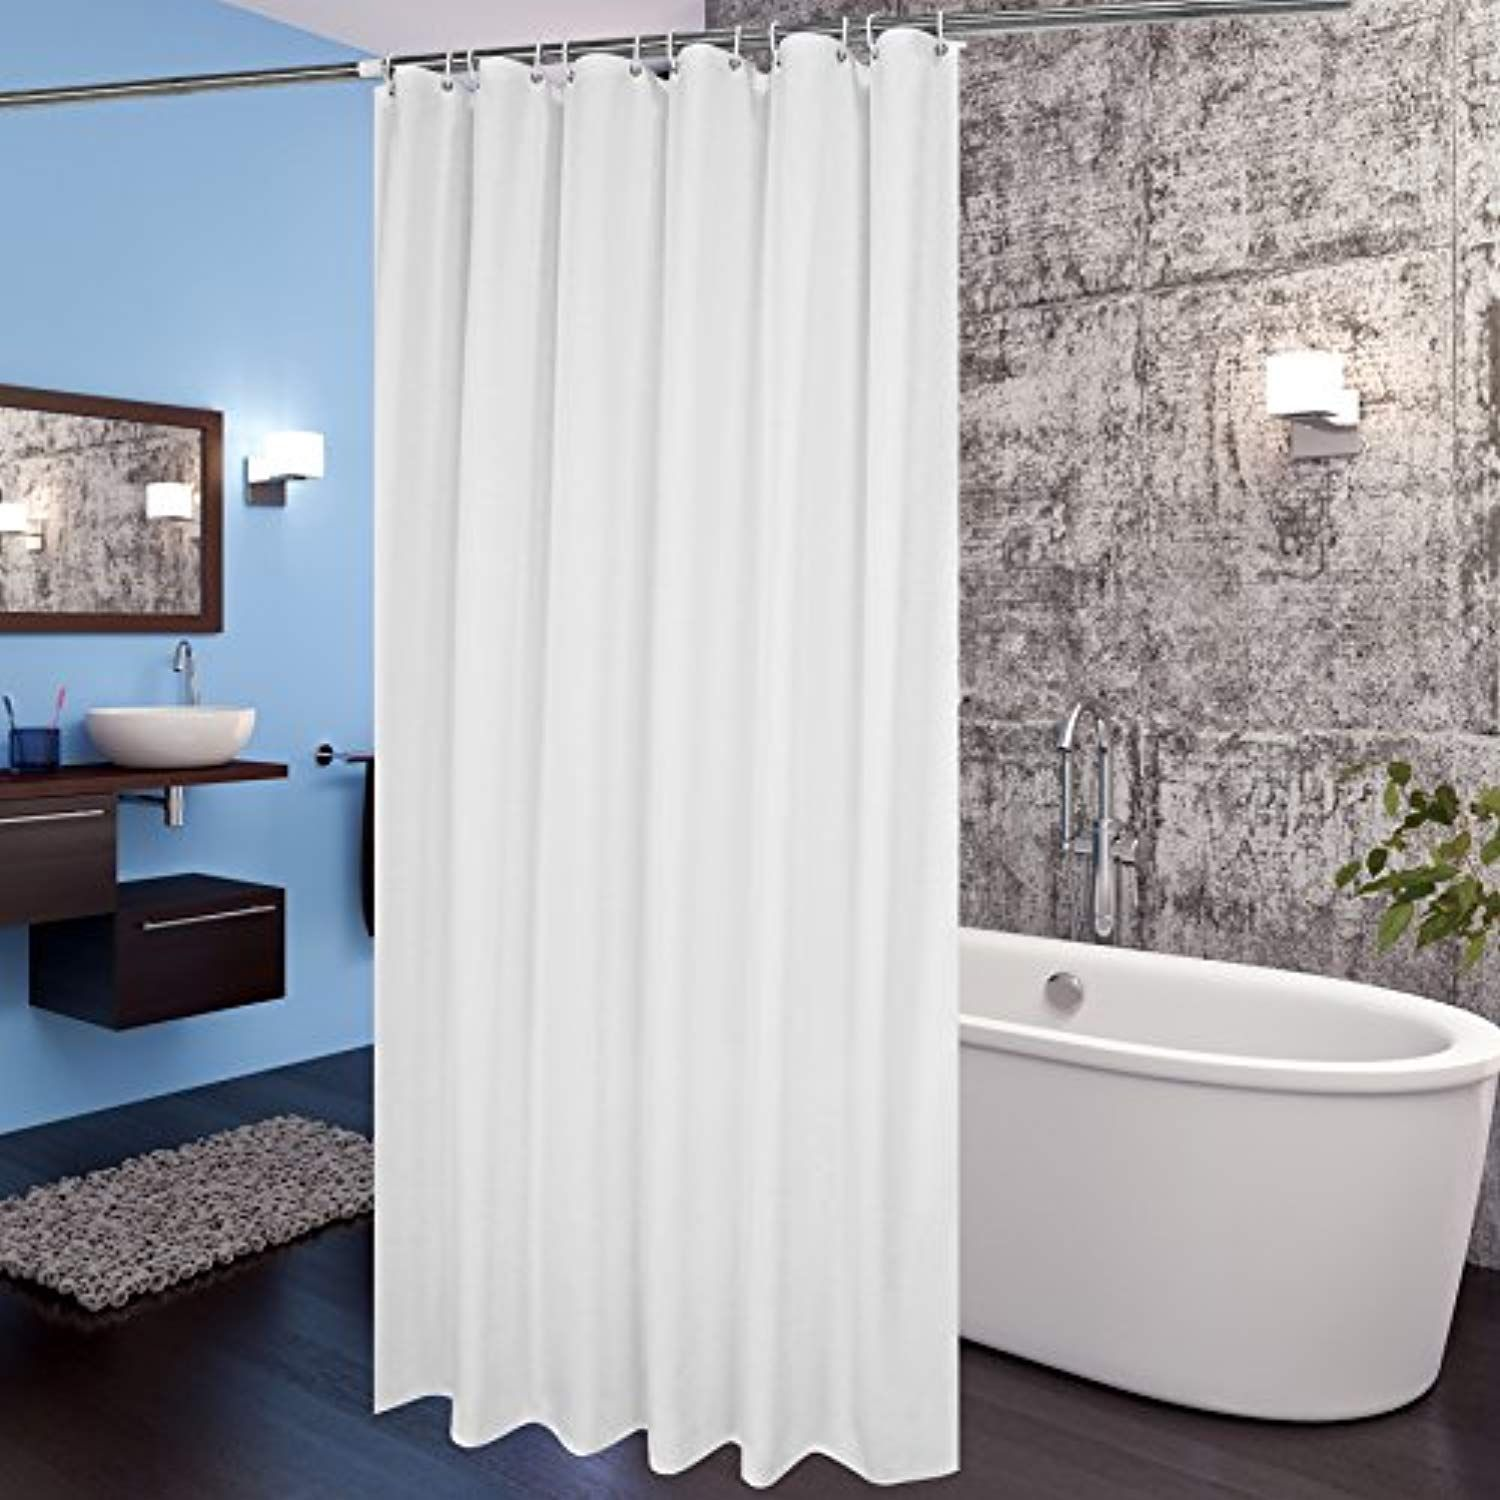 Aoohome fabric shower curtain x inch extra long shower curtain